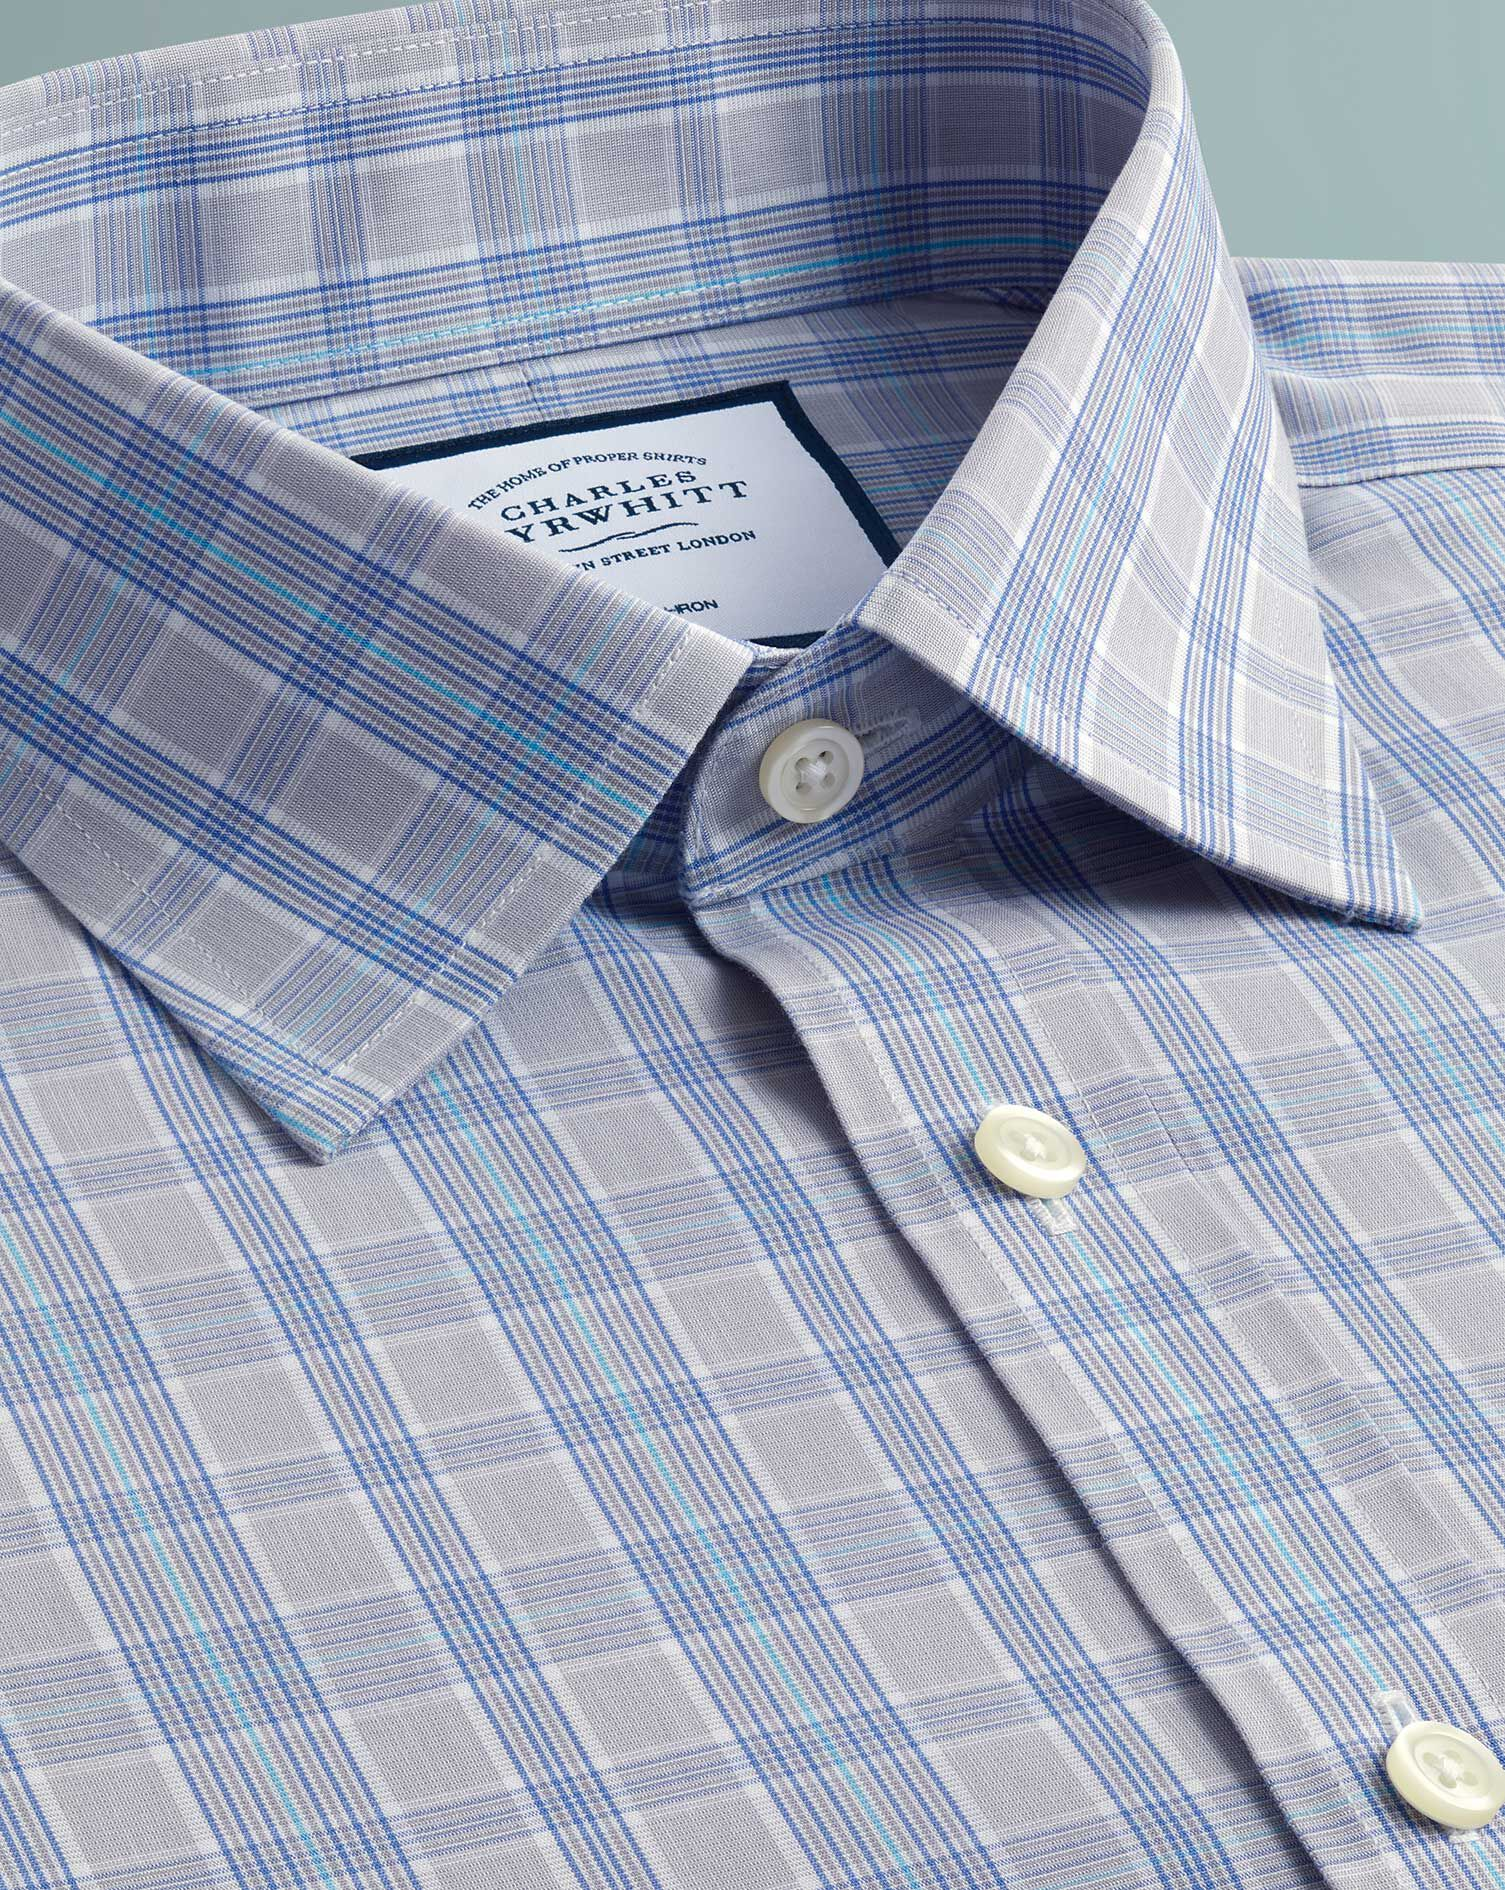 Extra Slim Fit Non-Iron Prince Of Wales Grey and Aqua Cotton Formal Shirt Single Cuff Size 14.5/32 b